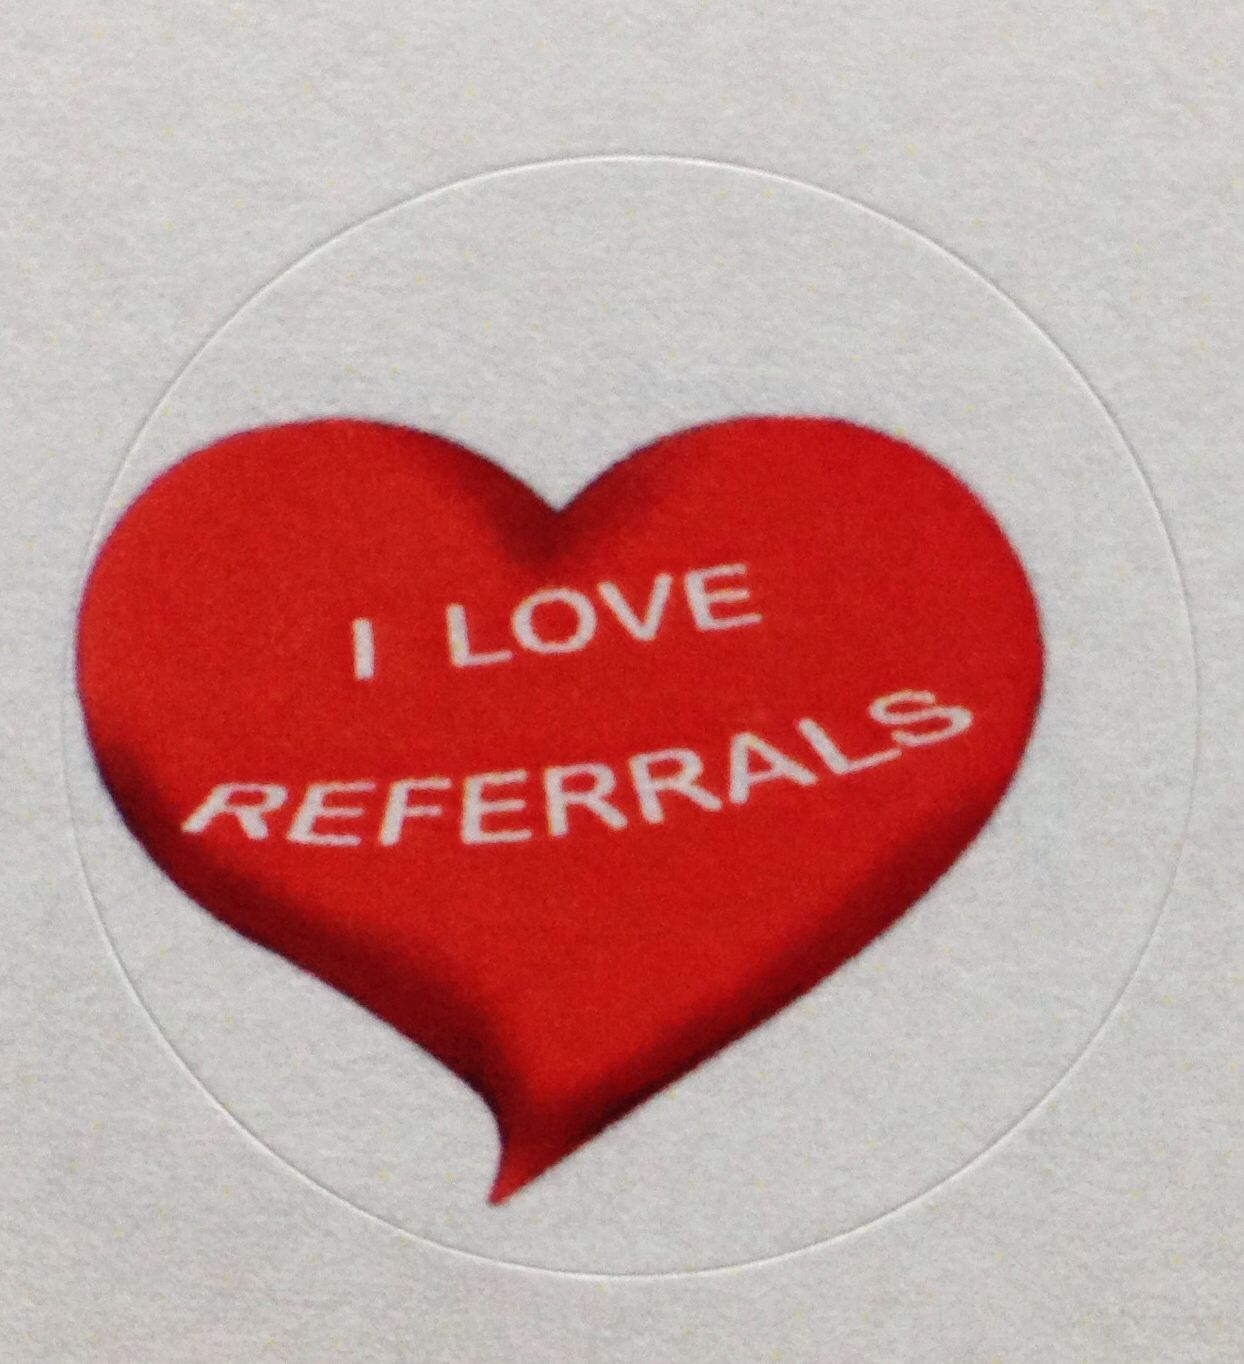 We Love Referrals Referrals My Love Love